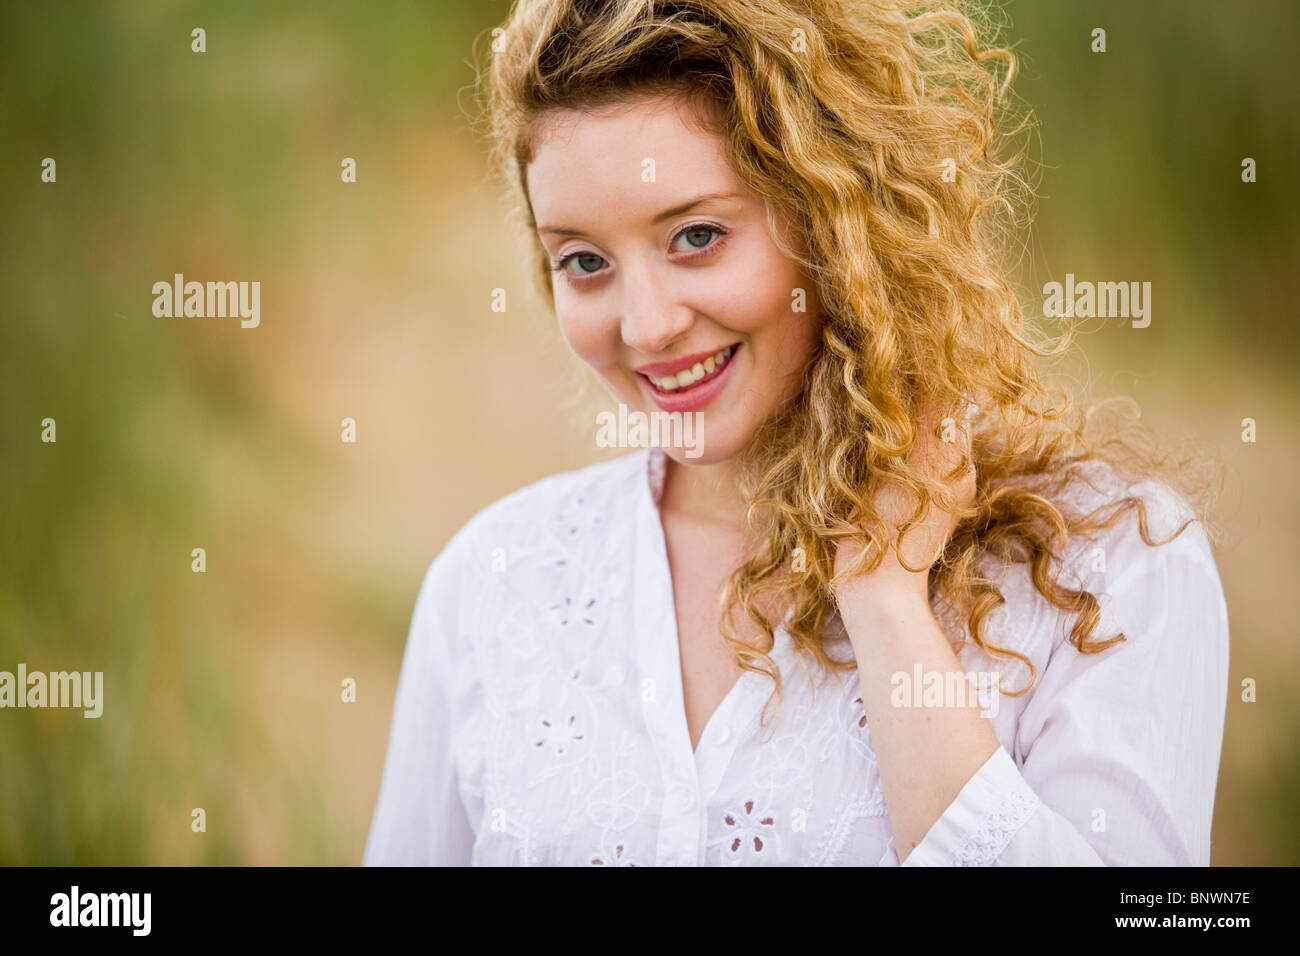 Portrait of attractive woman outdoors - Stock Image